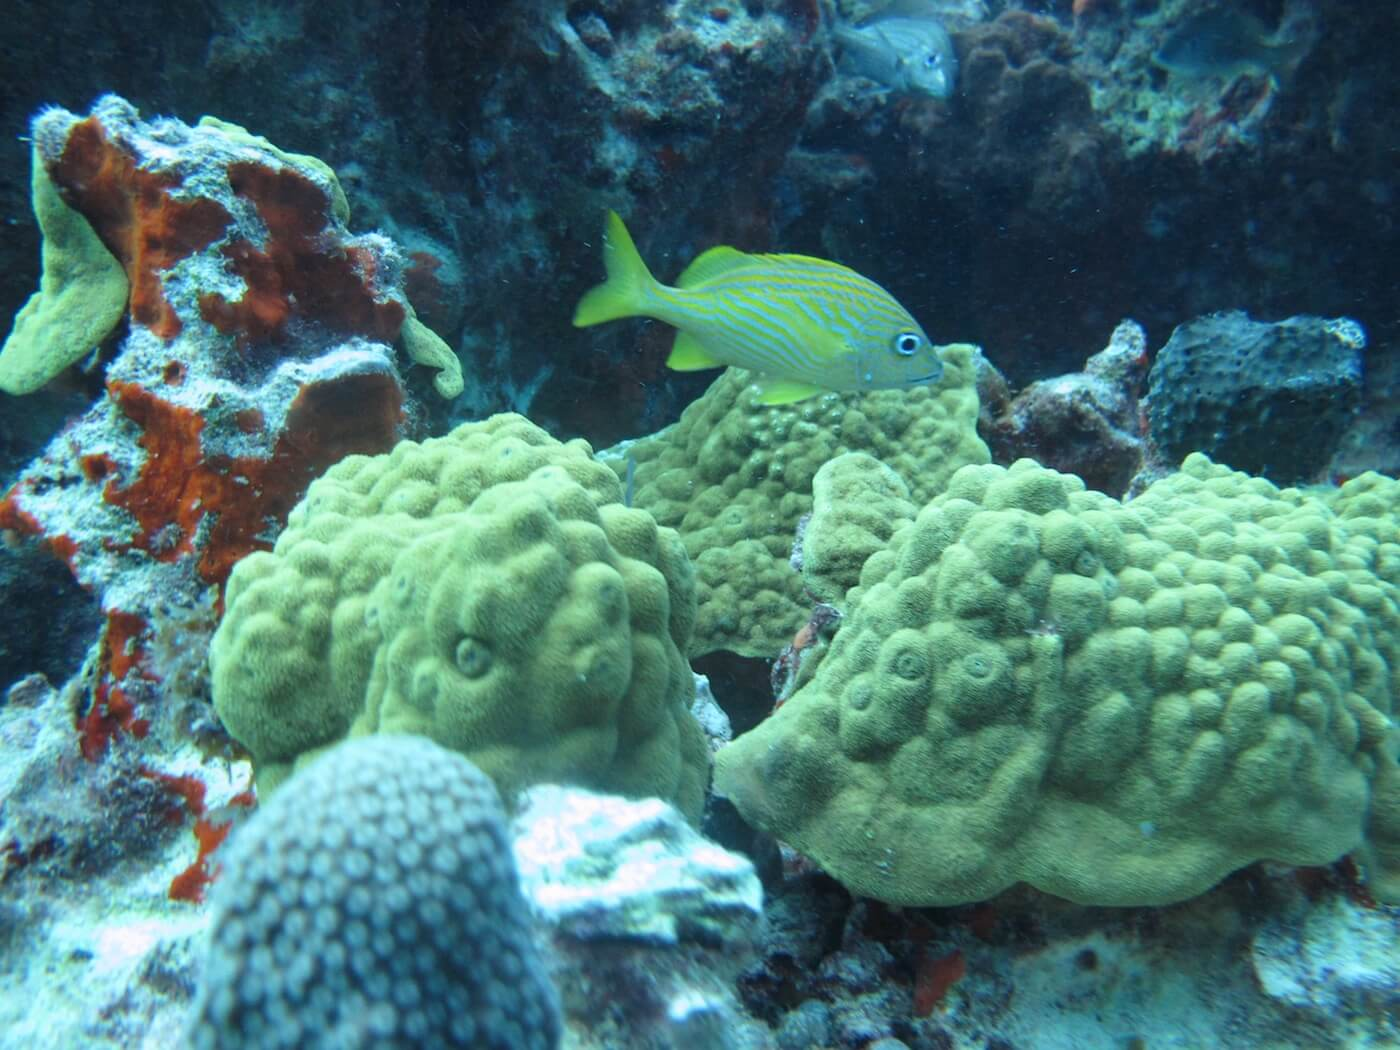 Wildlife-Snorkeling-Scuba-Diving-Tours-Isla-Mujeres-Carey-Dive-Center-17